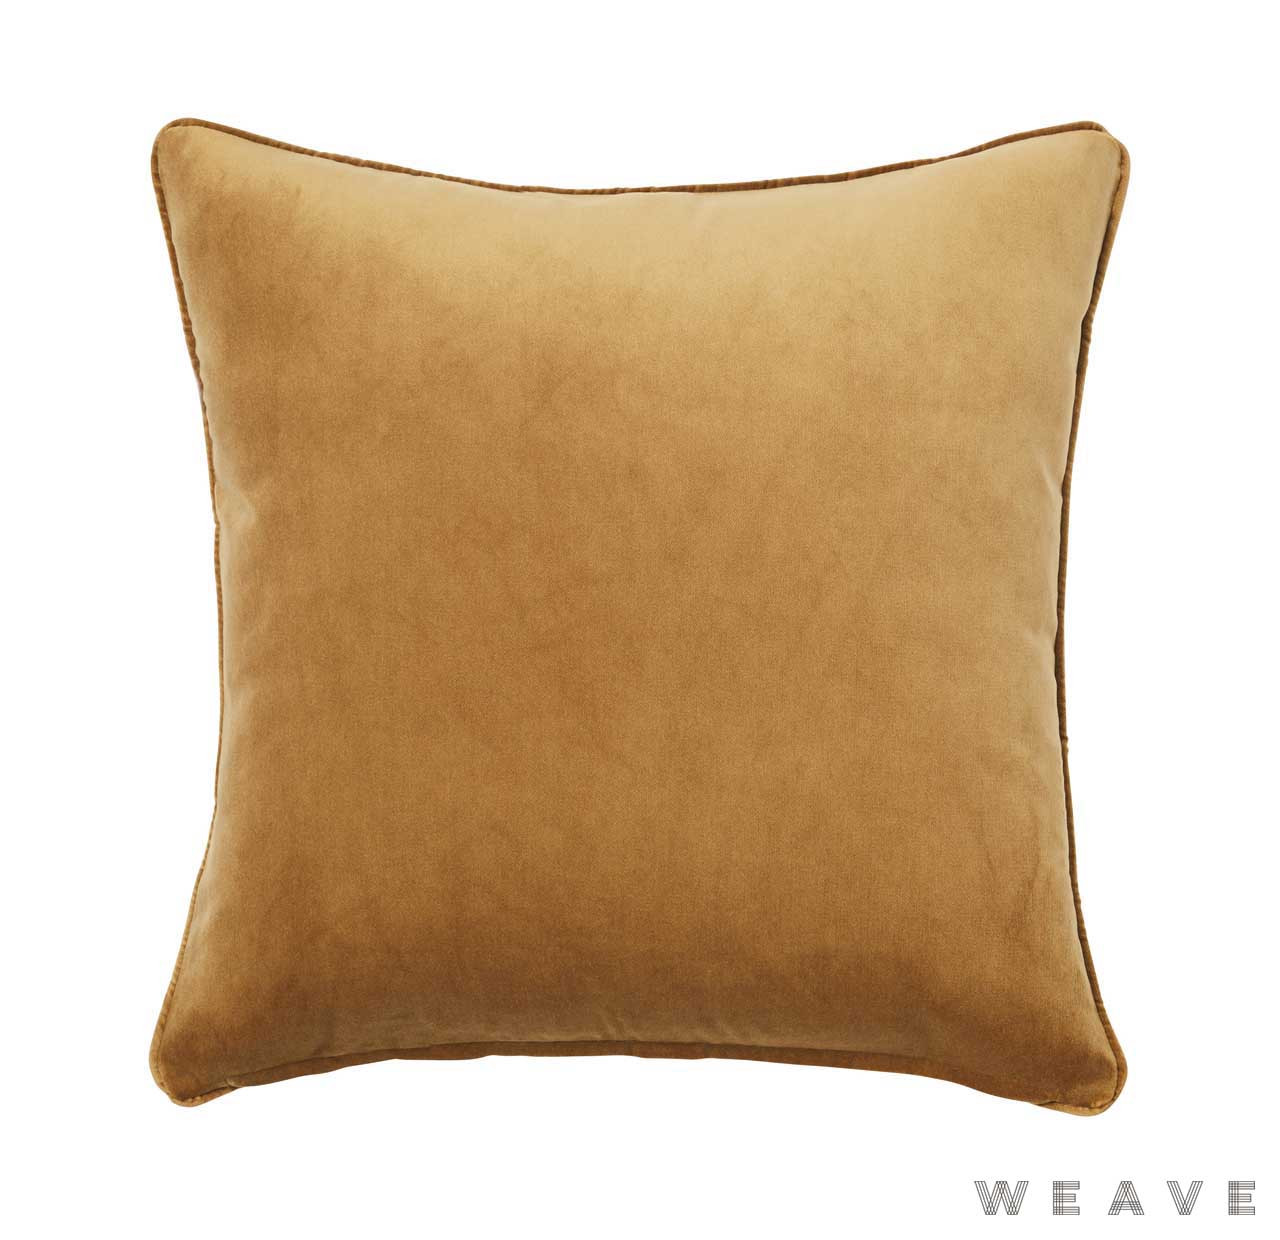 Weave - Zoe Cushion - Brass (Pack of 2)  | Cusion Fabric - Gold,  Yellow, Plain, Traditional, Weave